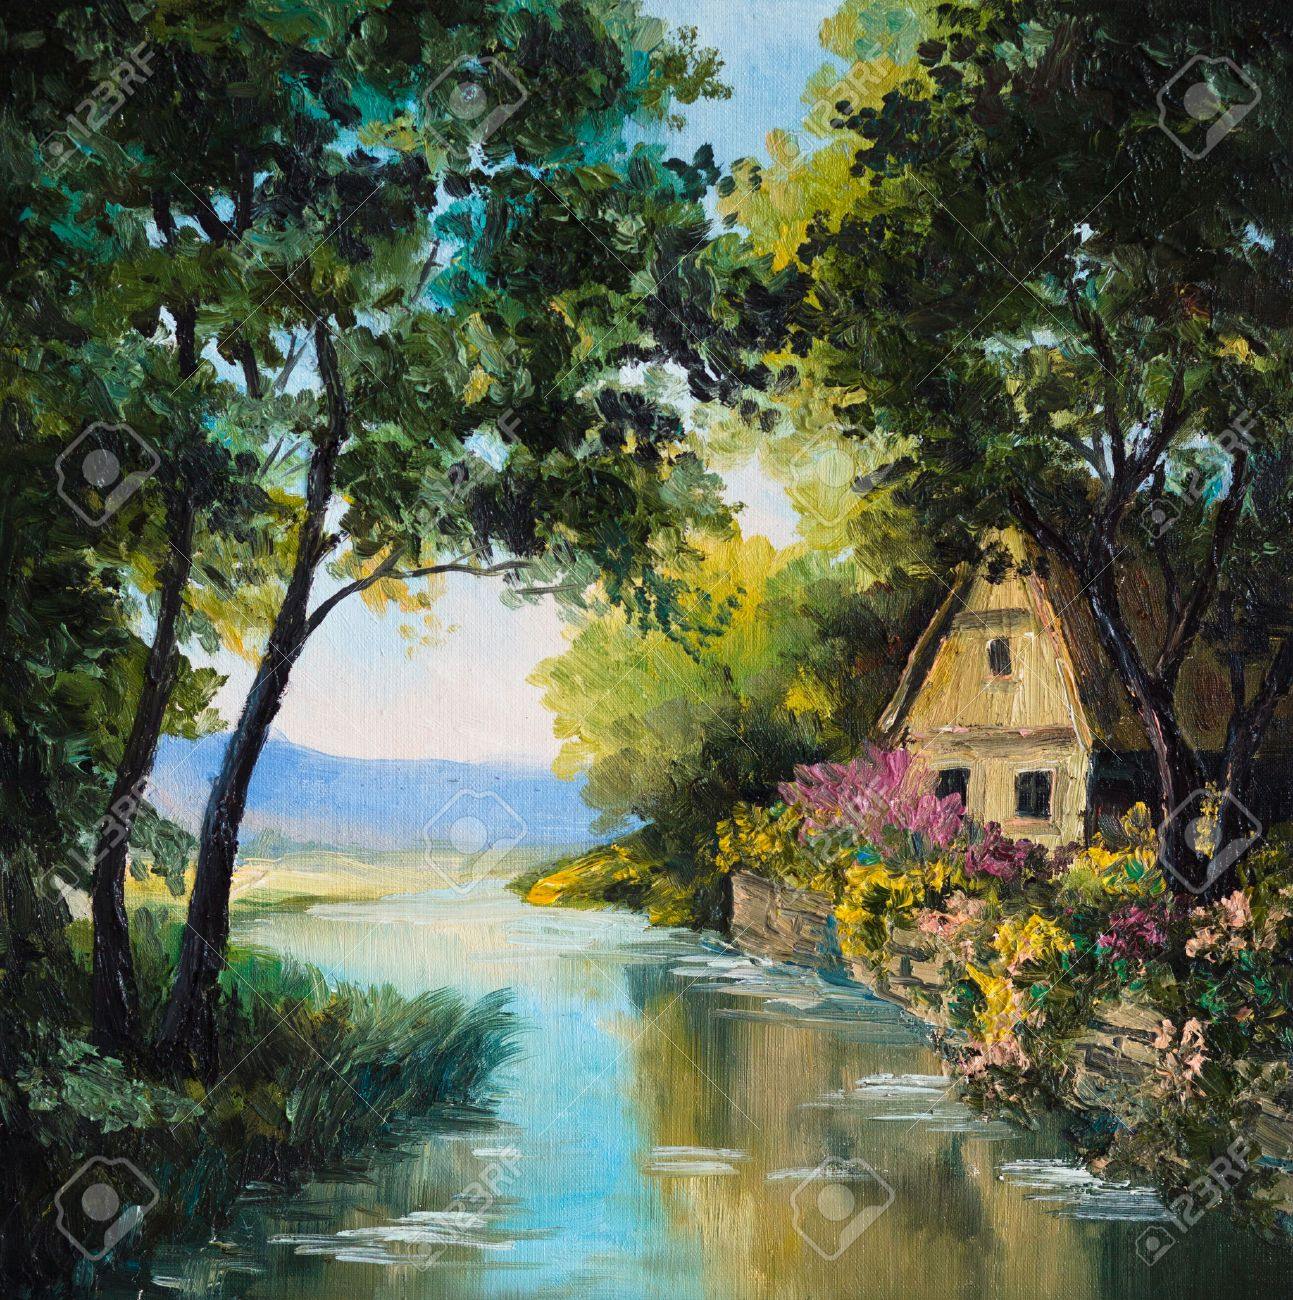 Oil Painting On Canvas - House Near The River, Tree, Wallpaper ...